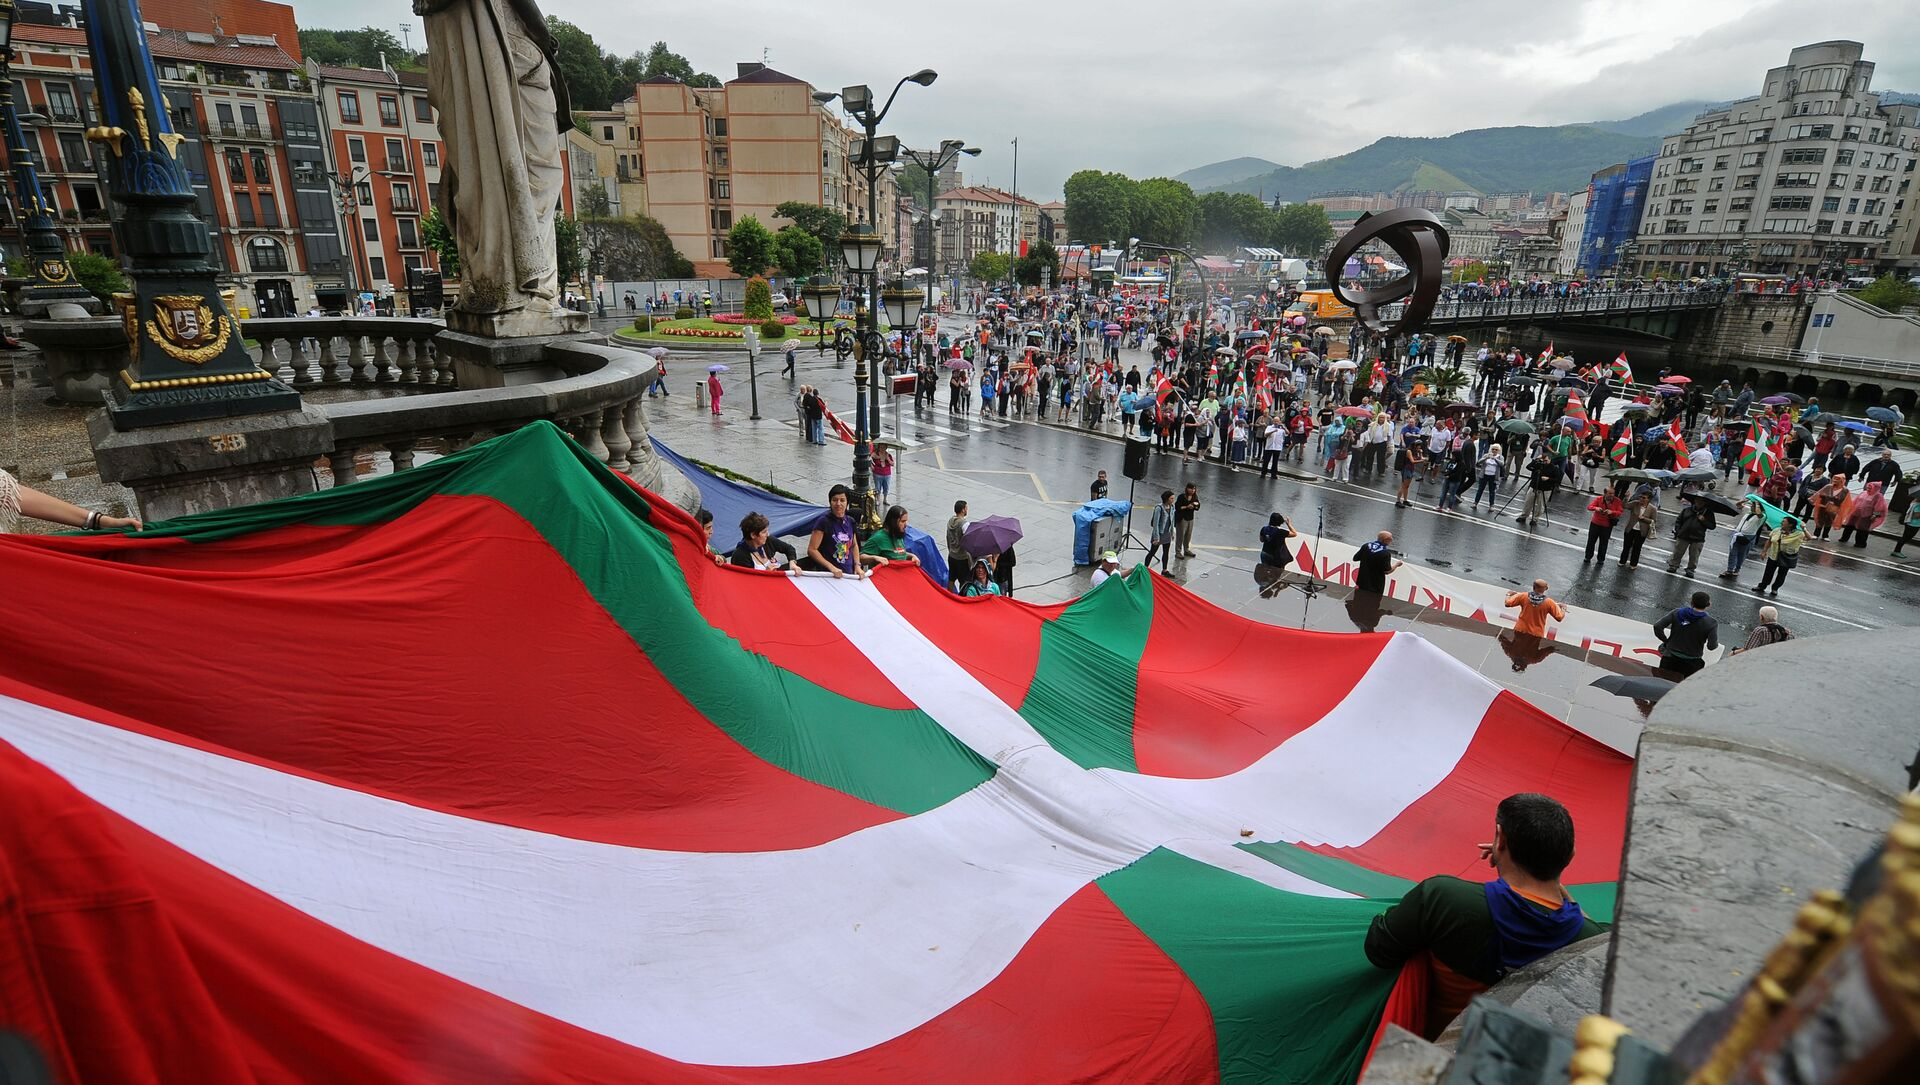 Pro independence demonstrators hold a big Ikurrina (Basque flag) at the entrance of the northern Spanish Basque city of Bilbao's Town Hall as they protest in favour of the Basque flag (Ikurrina) - Sputnik Mundo, 1920, 28.01.2021